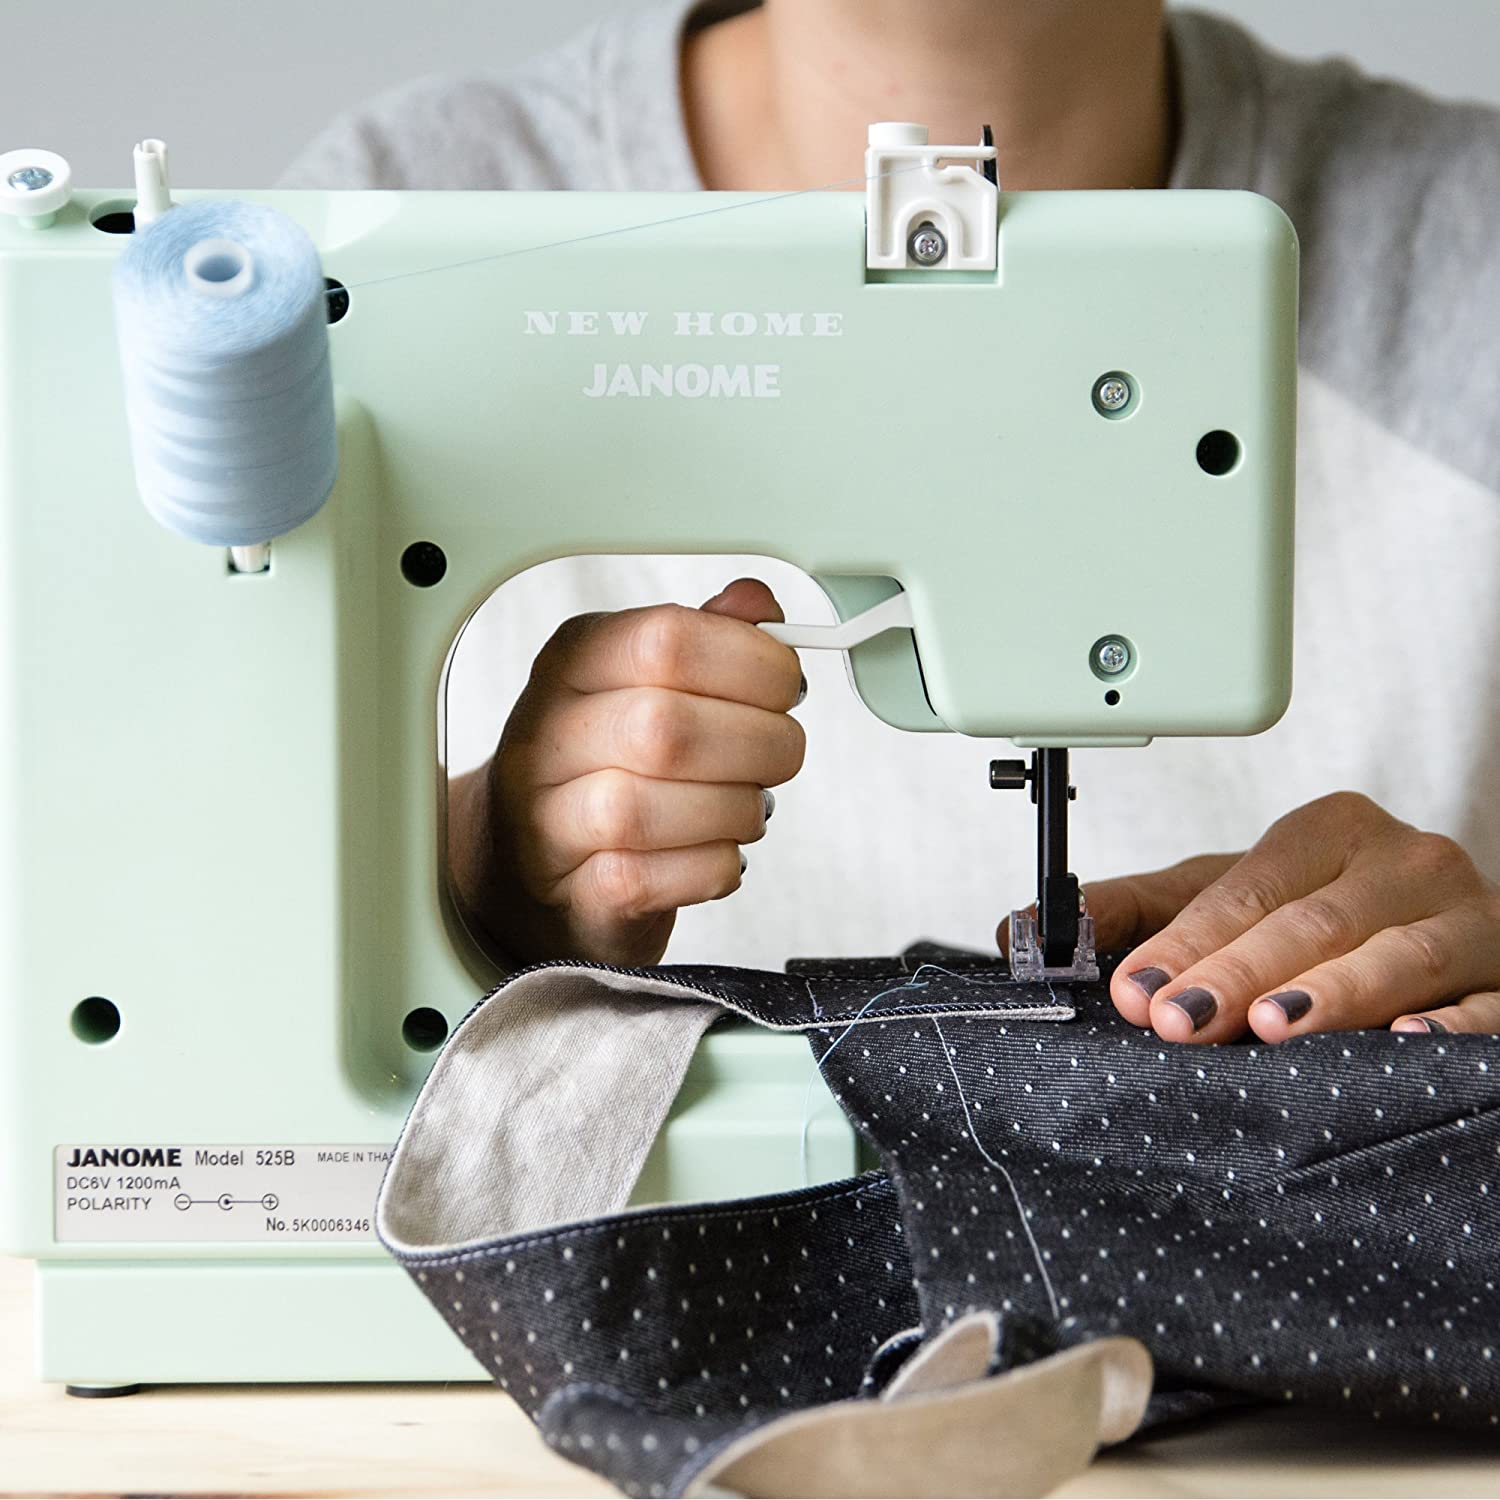 10-Stitch Portable Janome Mystical Mint Basic Easy-to-Use Compact Sewing Machine with Free Arm only 5 pounds